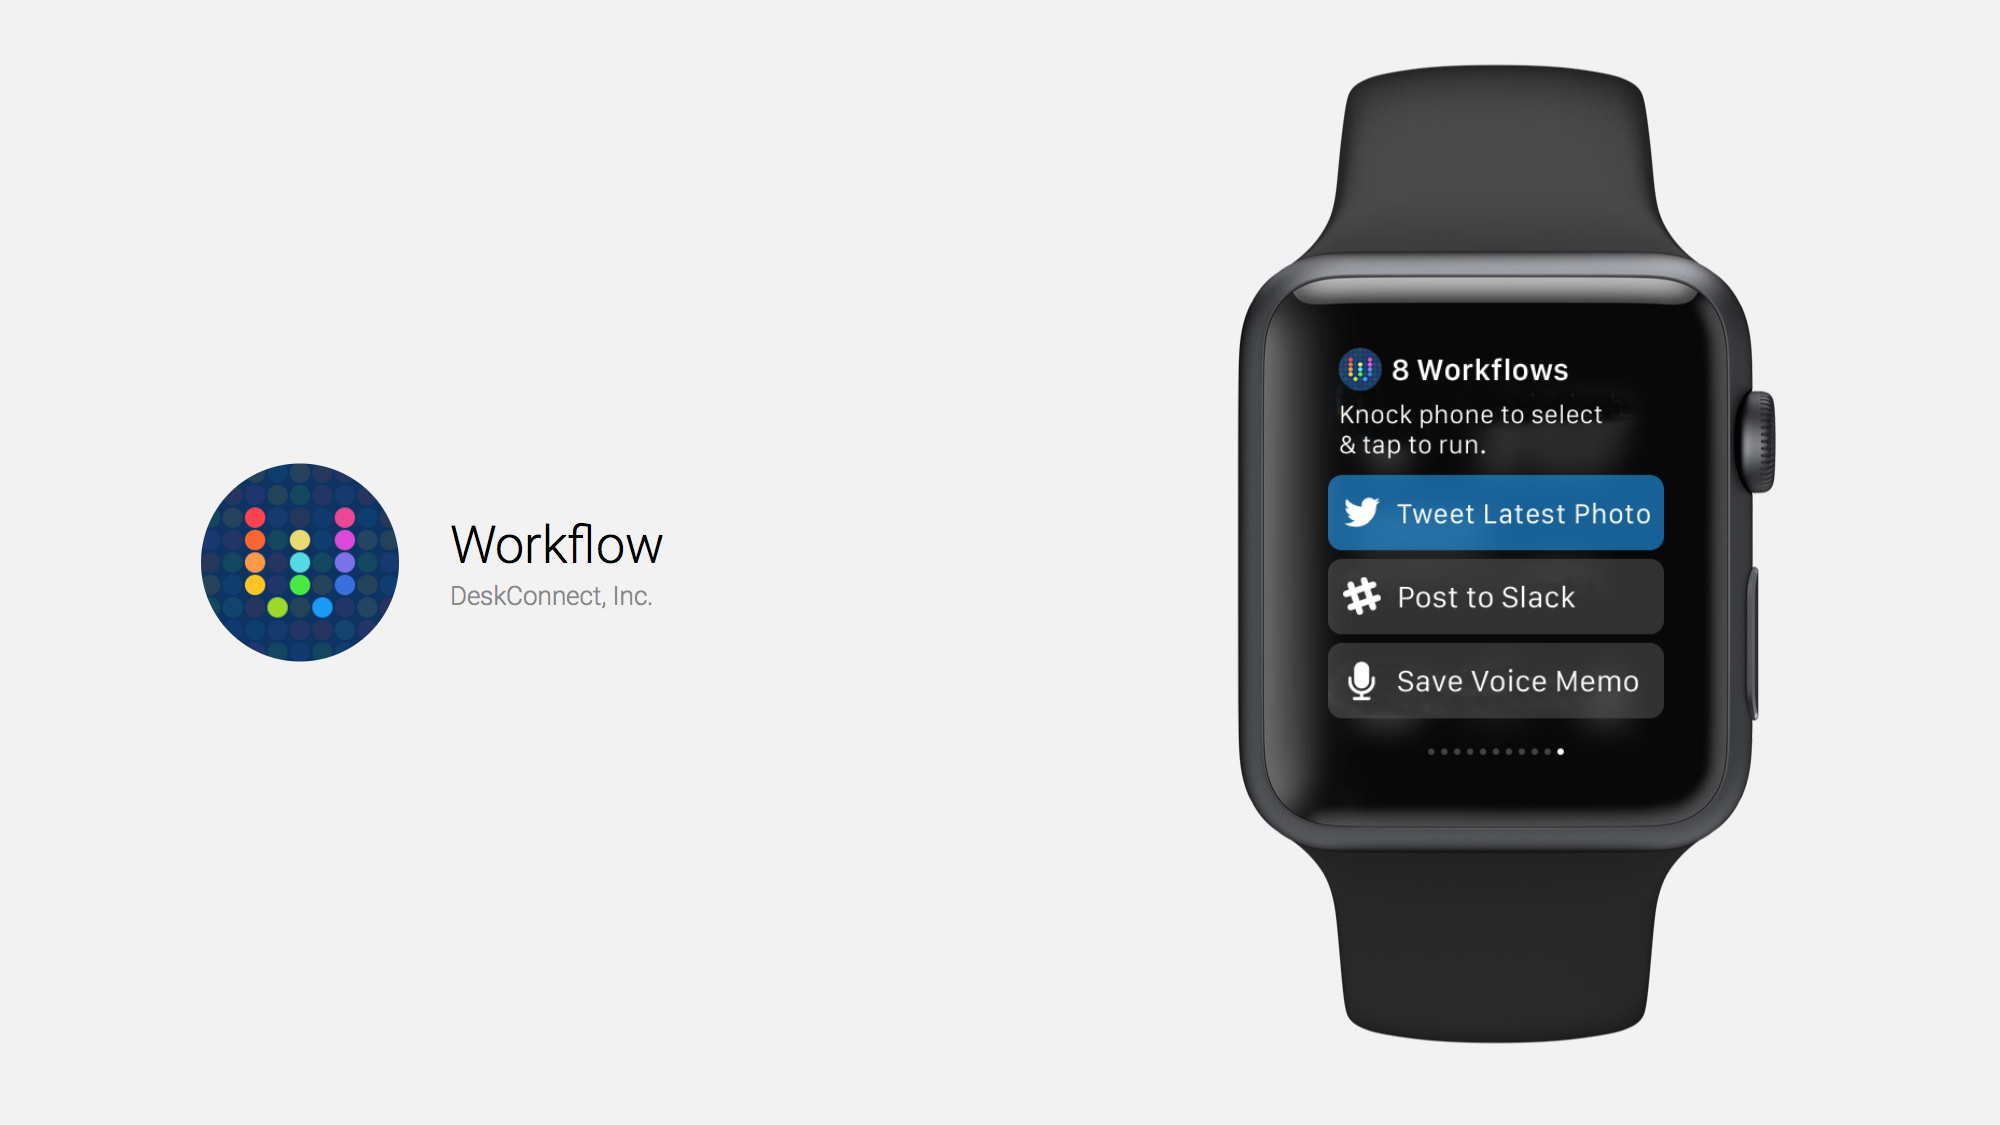 Automation App Workflow Acquired by Apple, Price Drops to Free